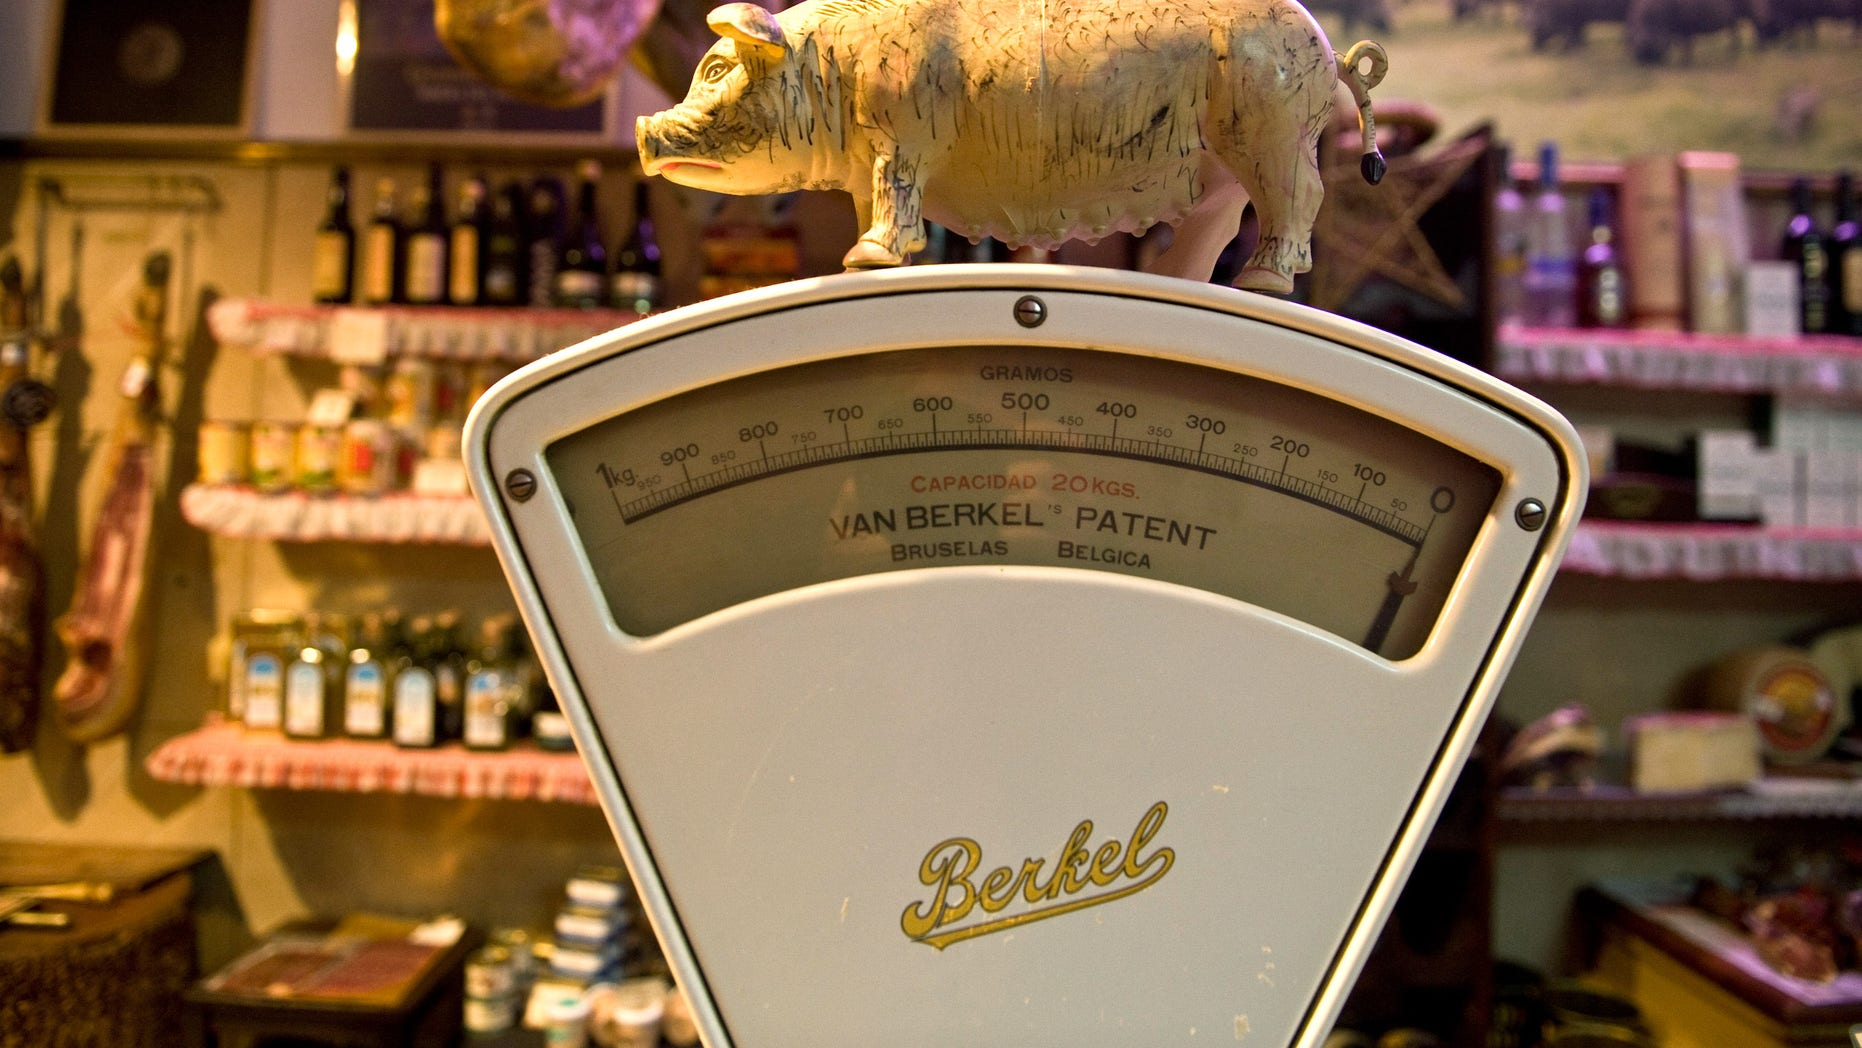 MADRID, SPAIN - DECEMBER 14: A small figurine of an Iberian Pig sits on an old weighing scales at the Alberto Lopez Araque jamon Iberico shop on December 14, 2012 in Madrid, Spain. Dry-cured Iberian ham or Jamon Iberico is a favourite amongst Spaniards and producers are hoping for improved sales over the busy christmas period. The jamon Iberico de Bellota are usually dry-cured for up to three years after the pigs have been few on a diet of acorns in the last three months of their lives.  (Photo by Denis Doyle/Getty Images)